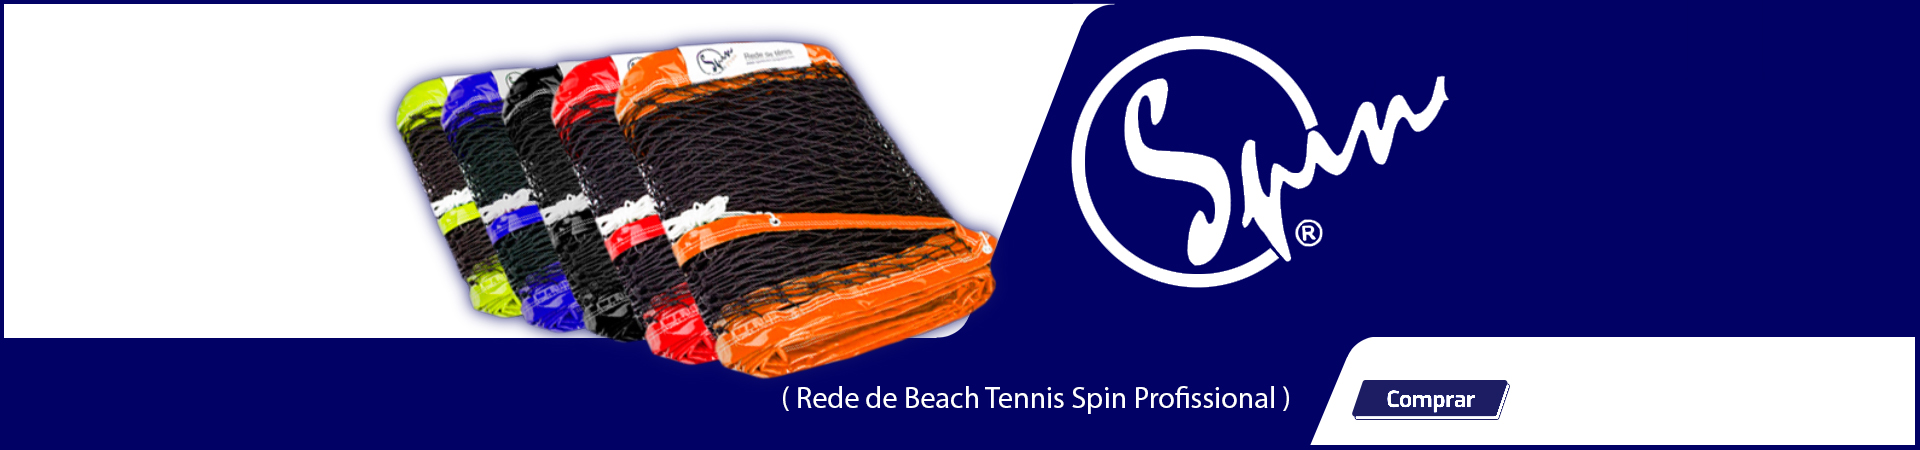 Rede de Beach Tennis